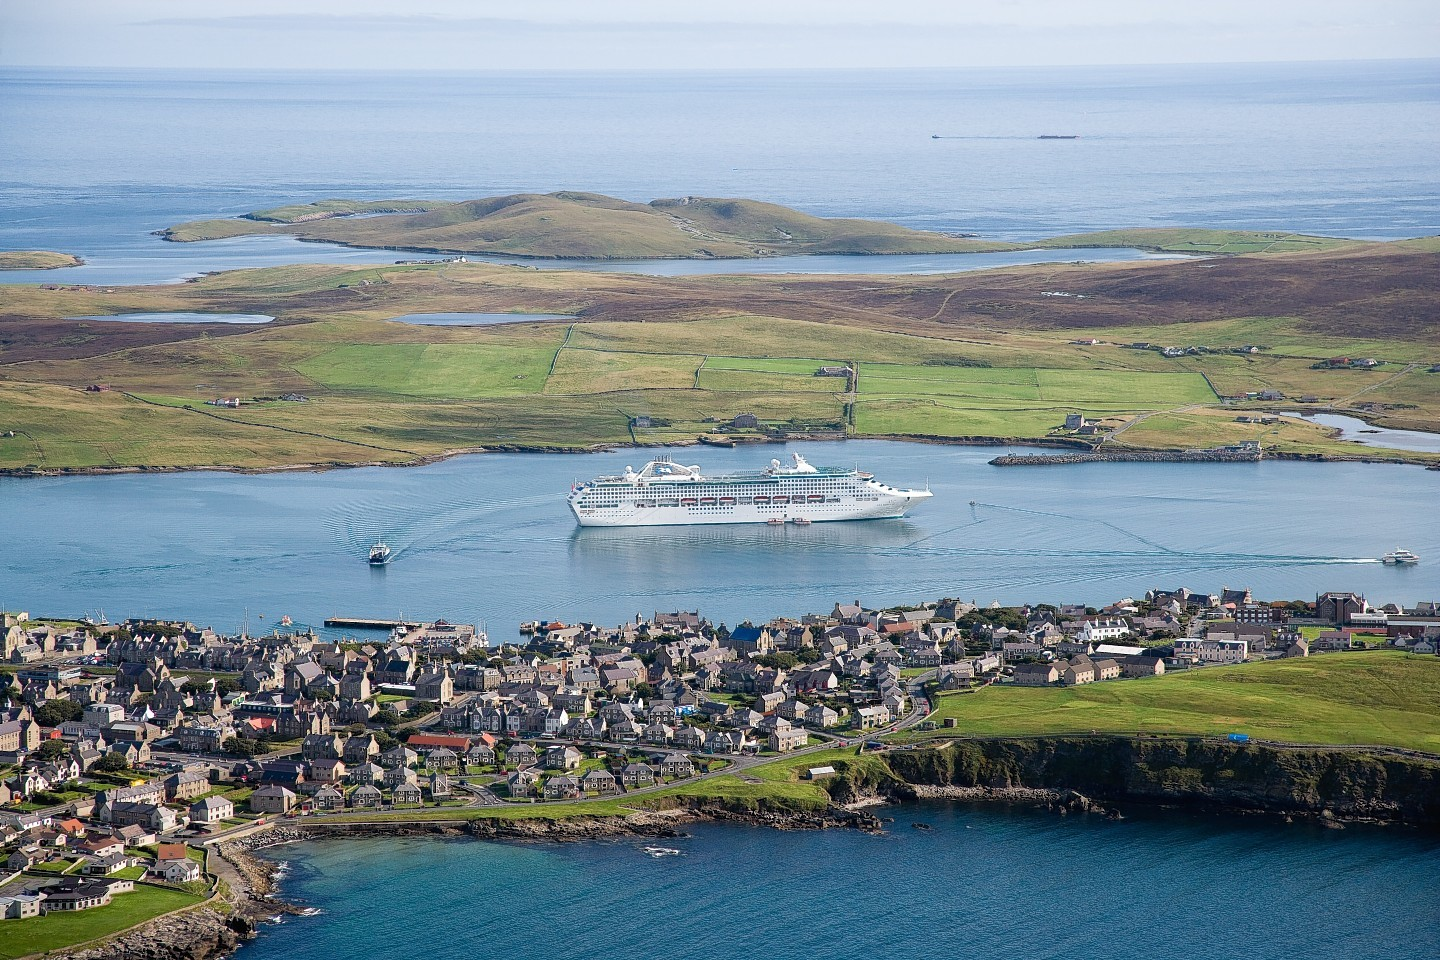 Sea Princess at Lerwick